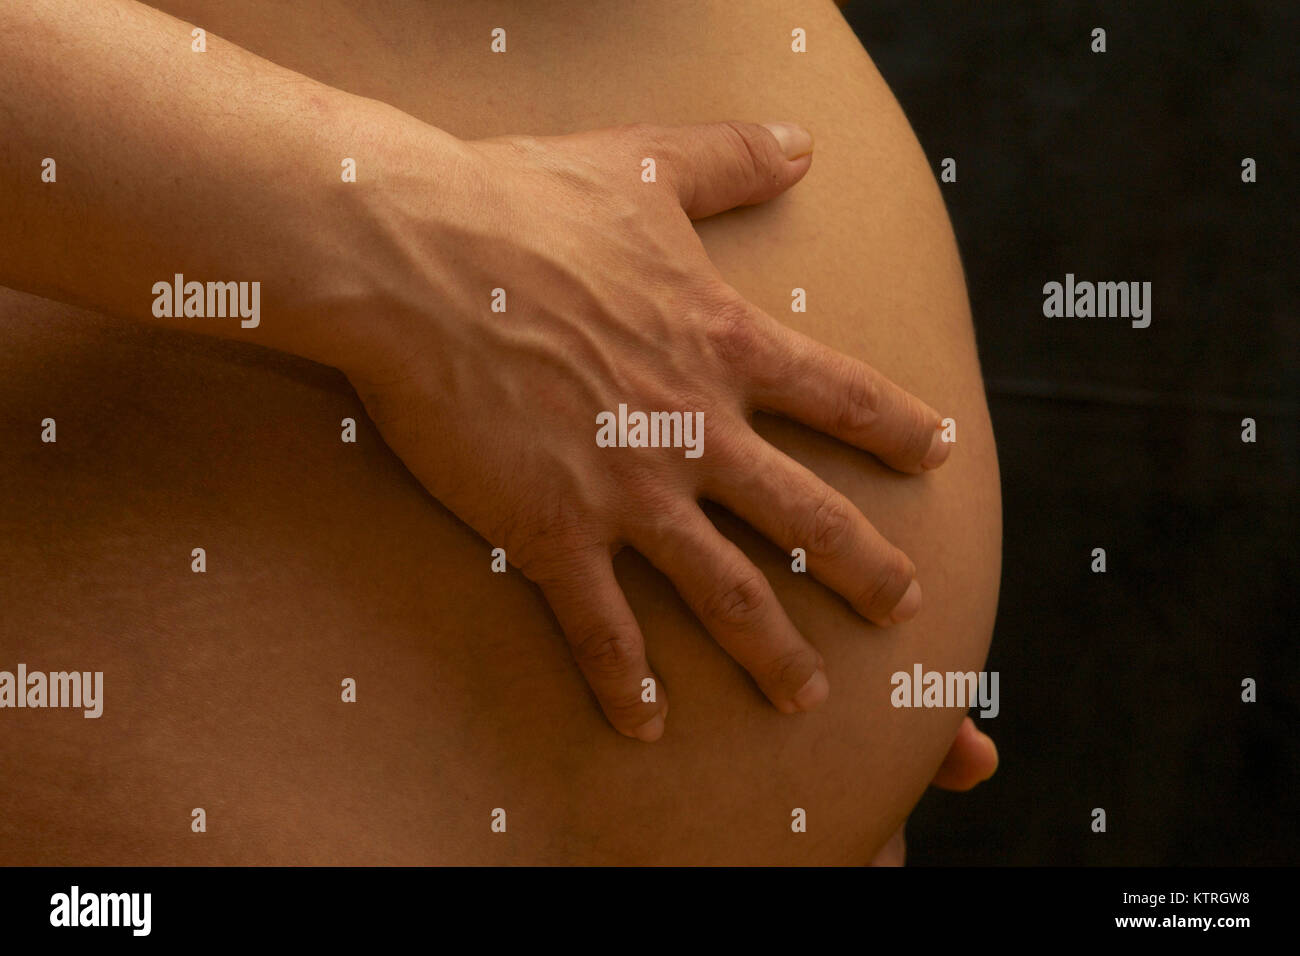 Pregnancy: Pregnant belly of a european woman. - Stock Image